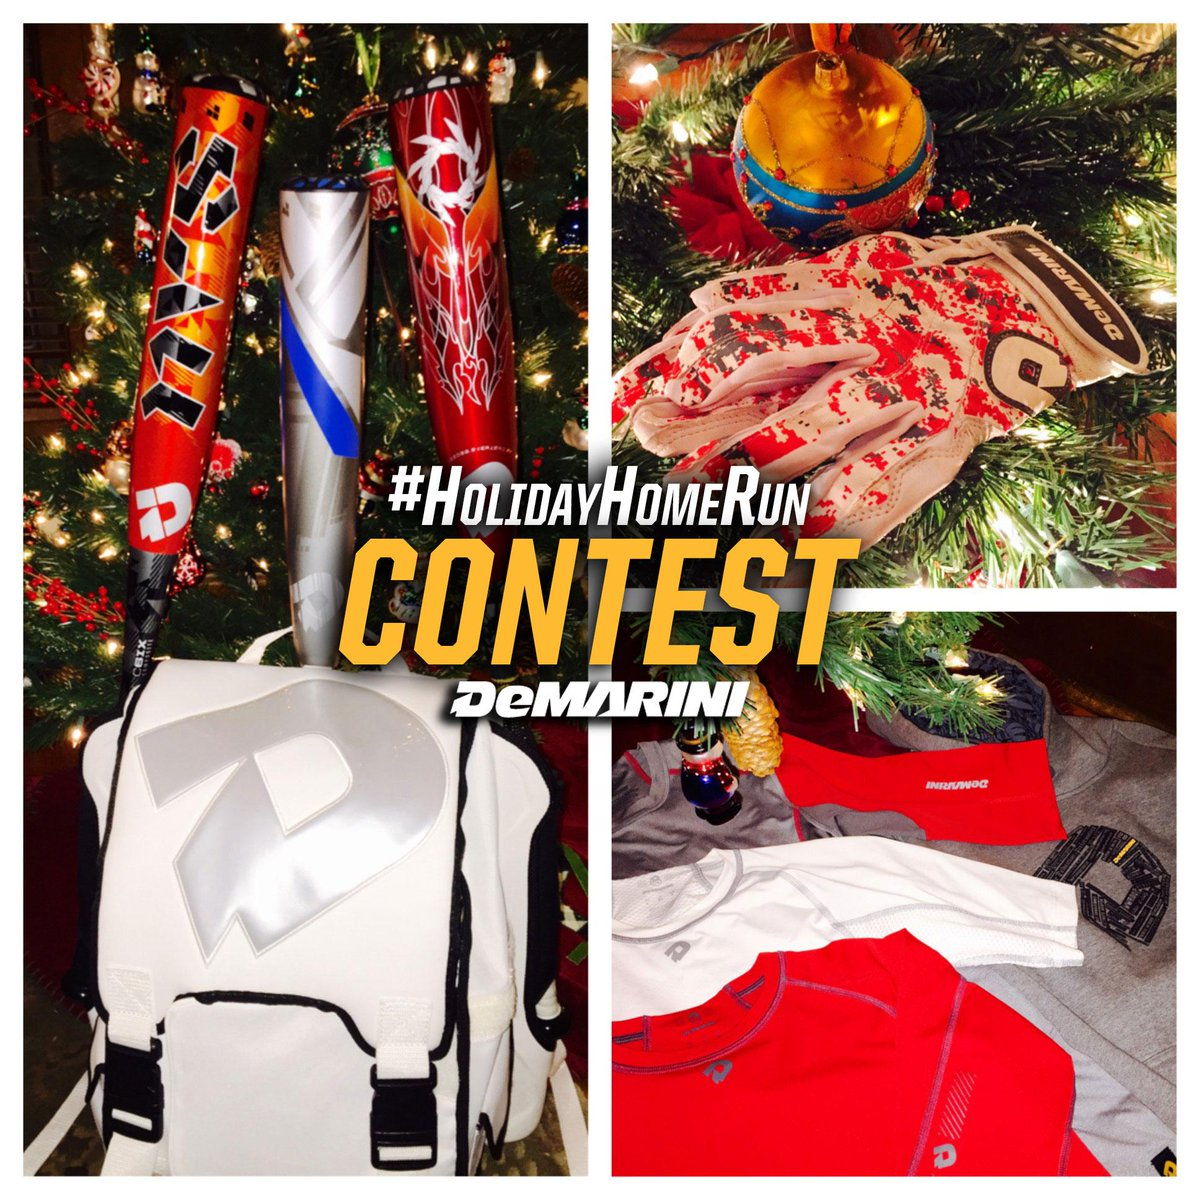 HOLIDAY HOME RUN CONTEST! A chance to win the best gift you'll get this year. Follow us & RT to enter #HolidayHomeRun http://t.co/EIFzDZh7gU